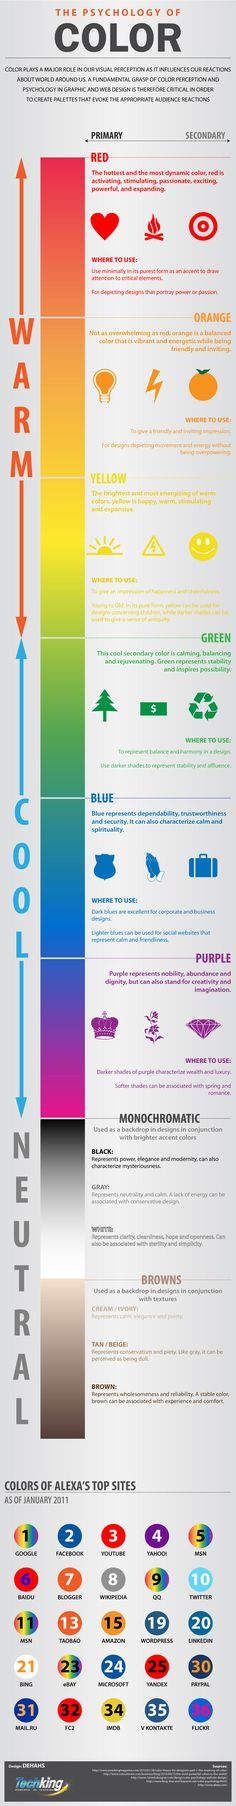 The Psychology of Color - Great poster! #artEdu #poster #color